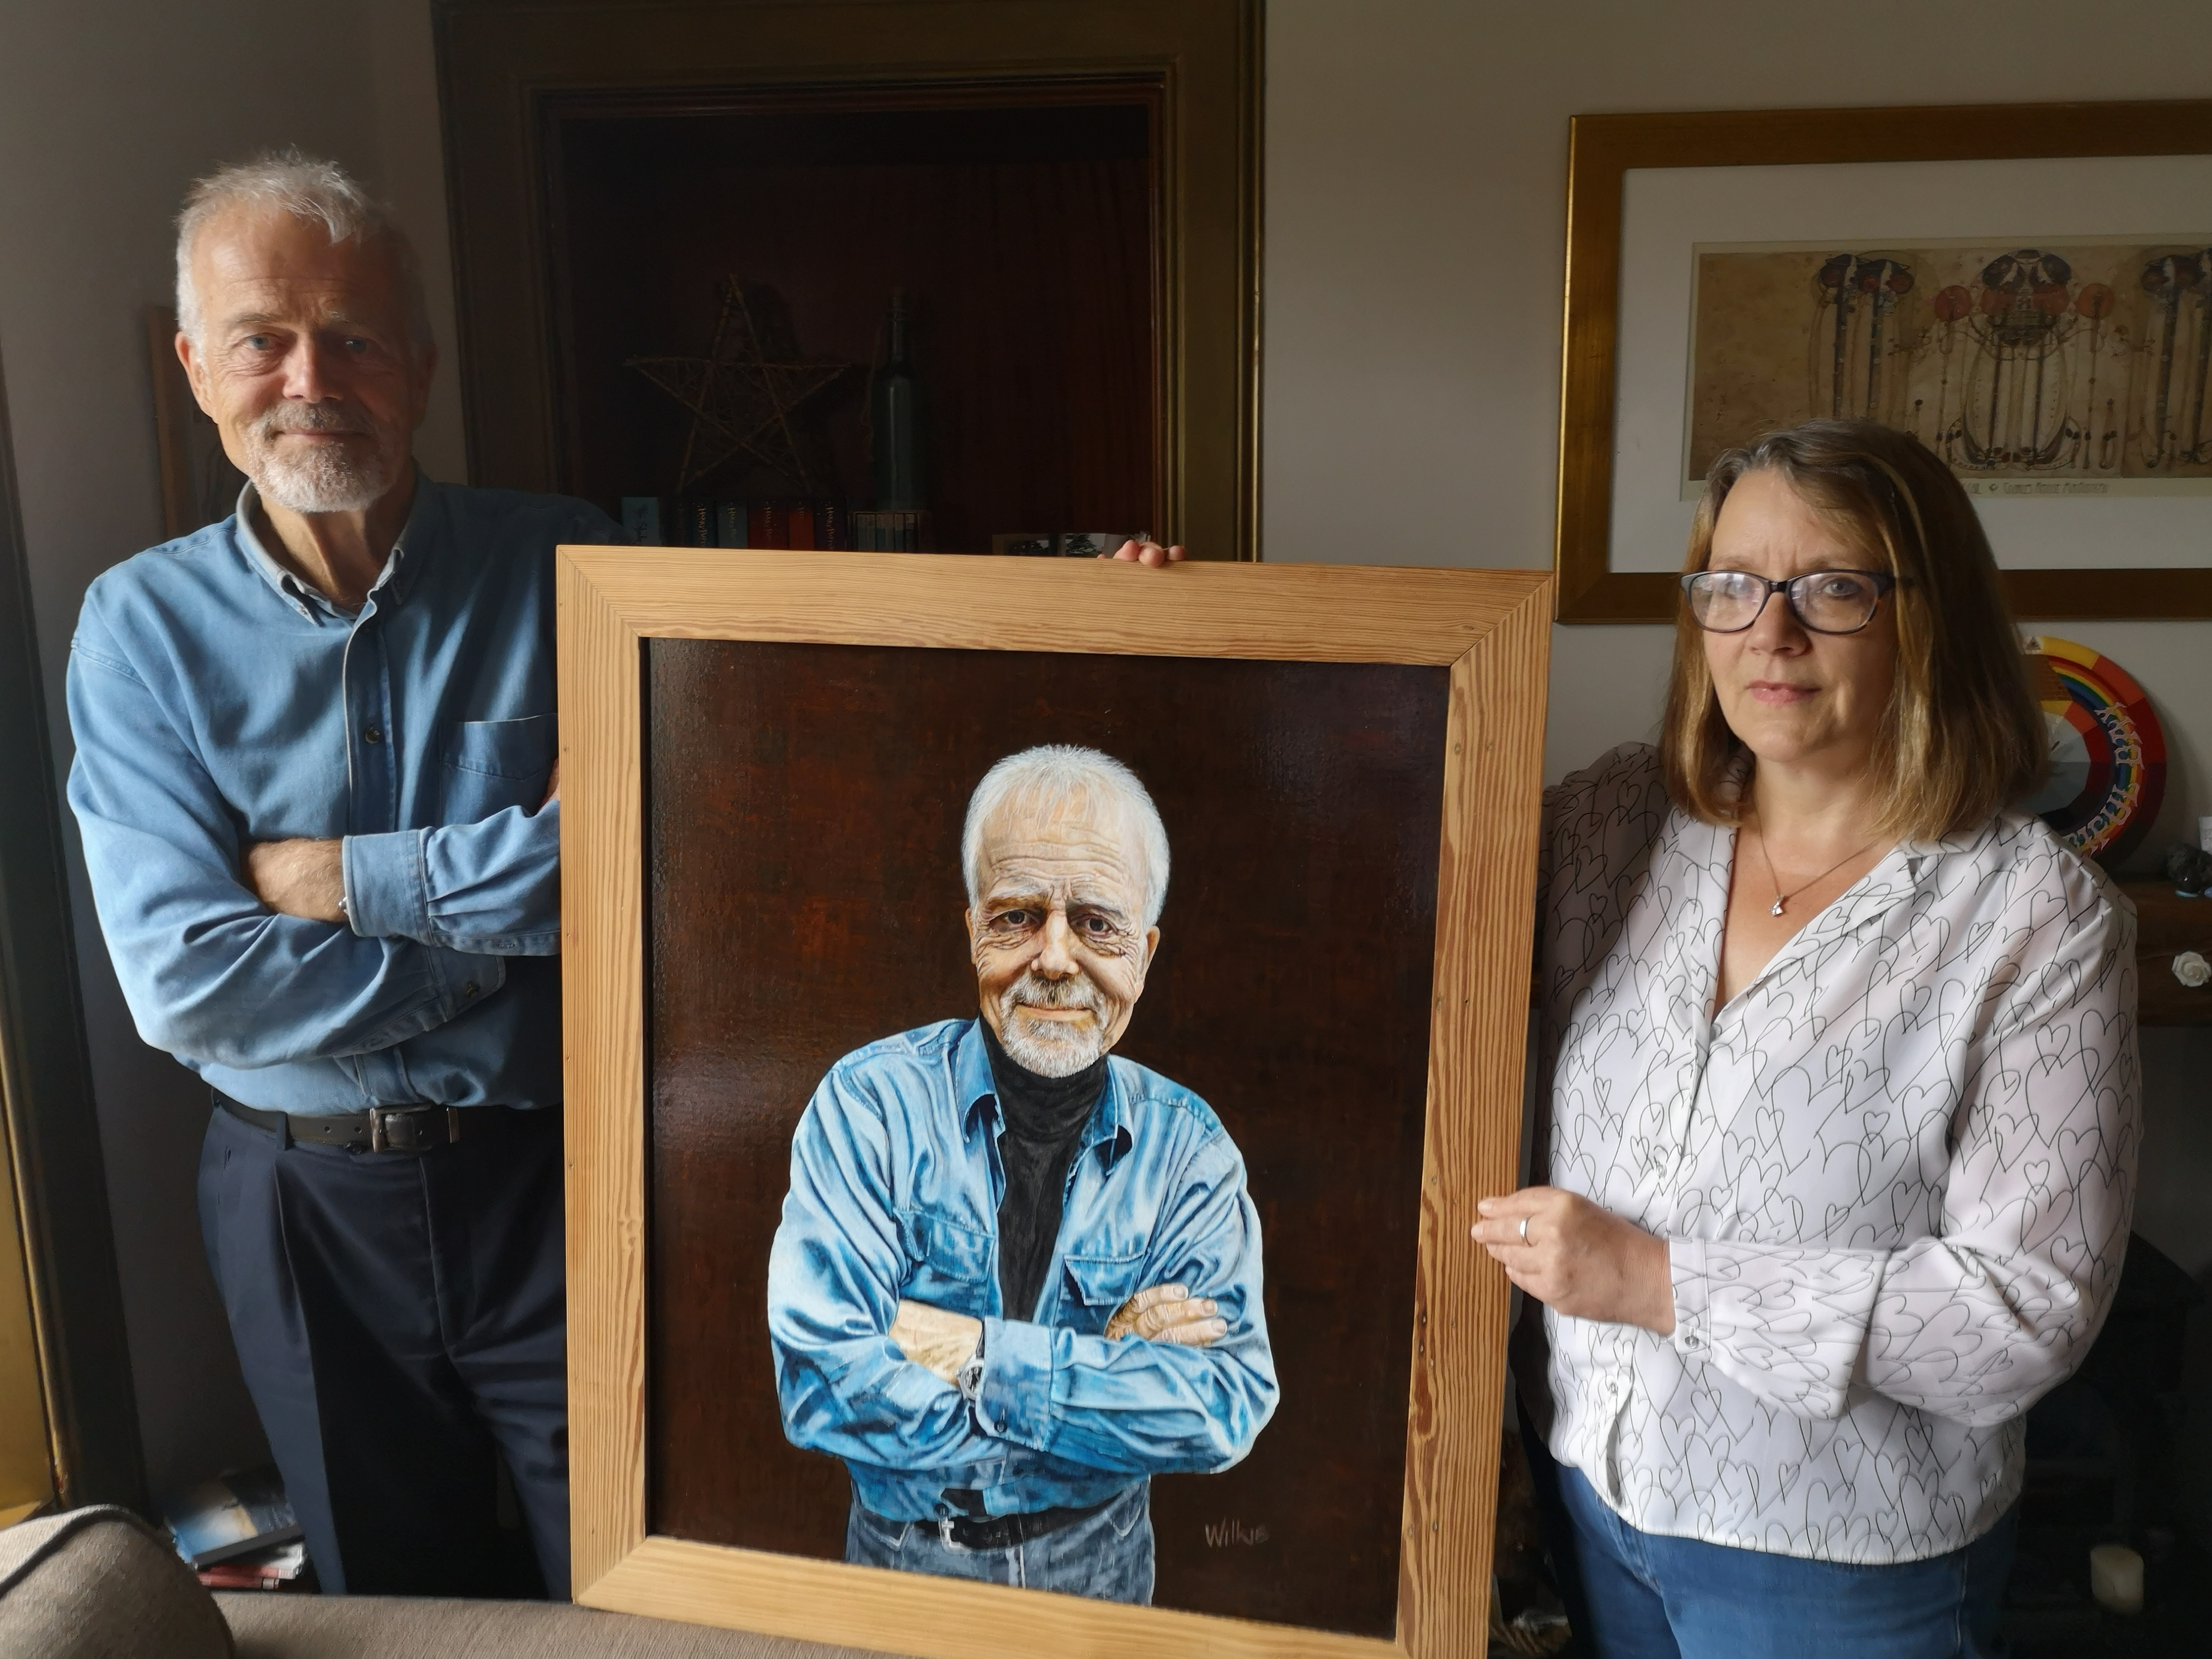 Susan Wilkie with Malcolm Robertson and the portrait.